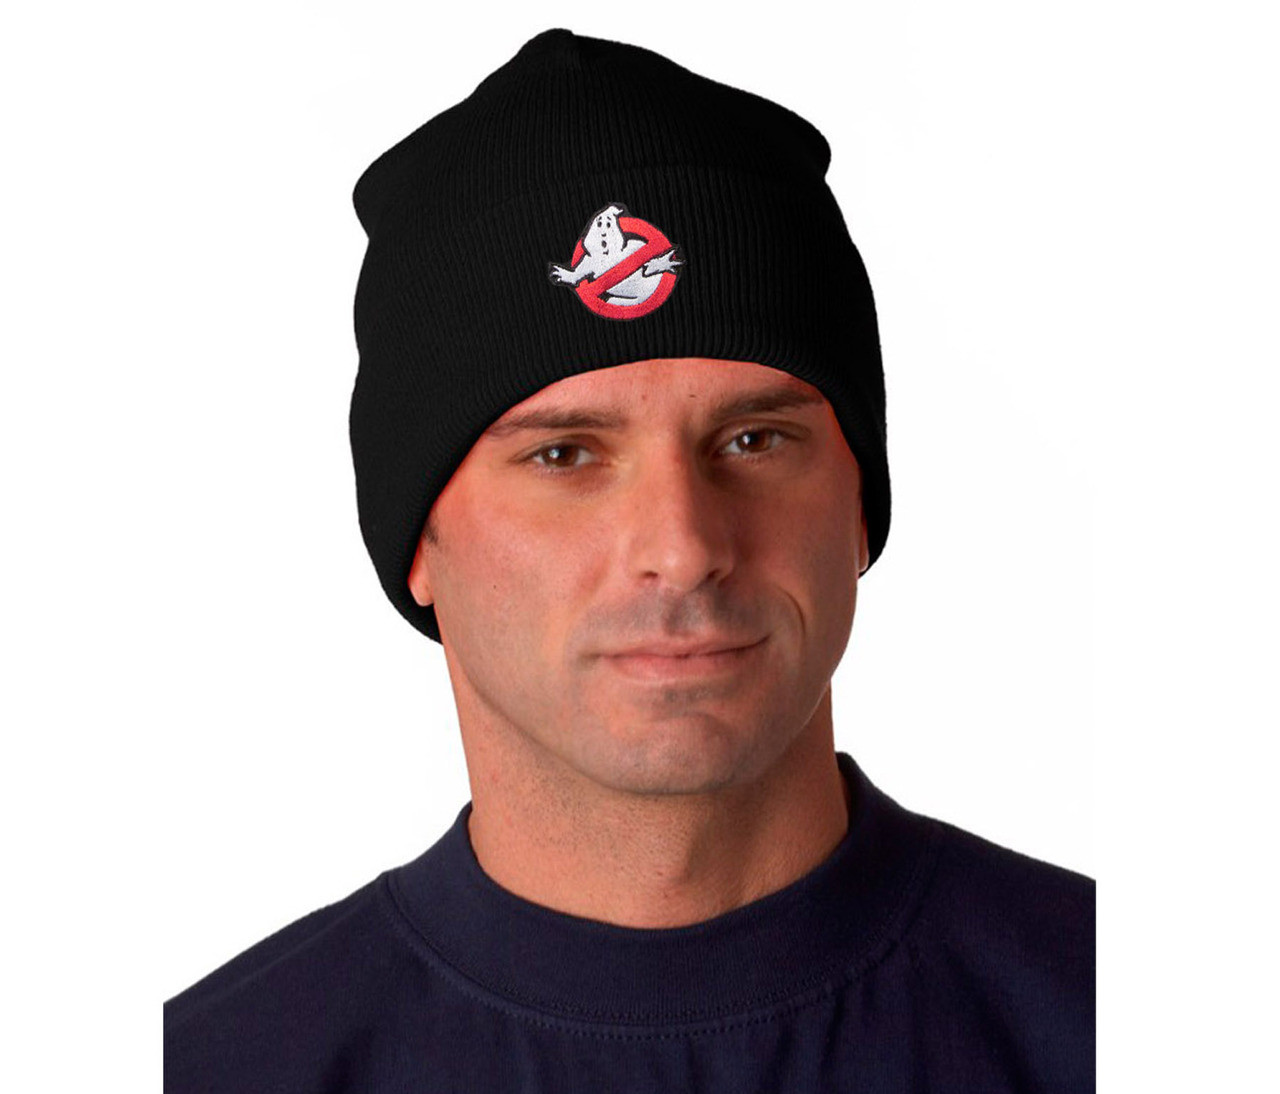 Ghostbusters Logo Knit Hat Main Pix  60187.1462596641.jpg c 2 imbypass on 13453d65f335